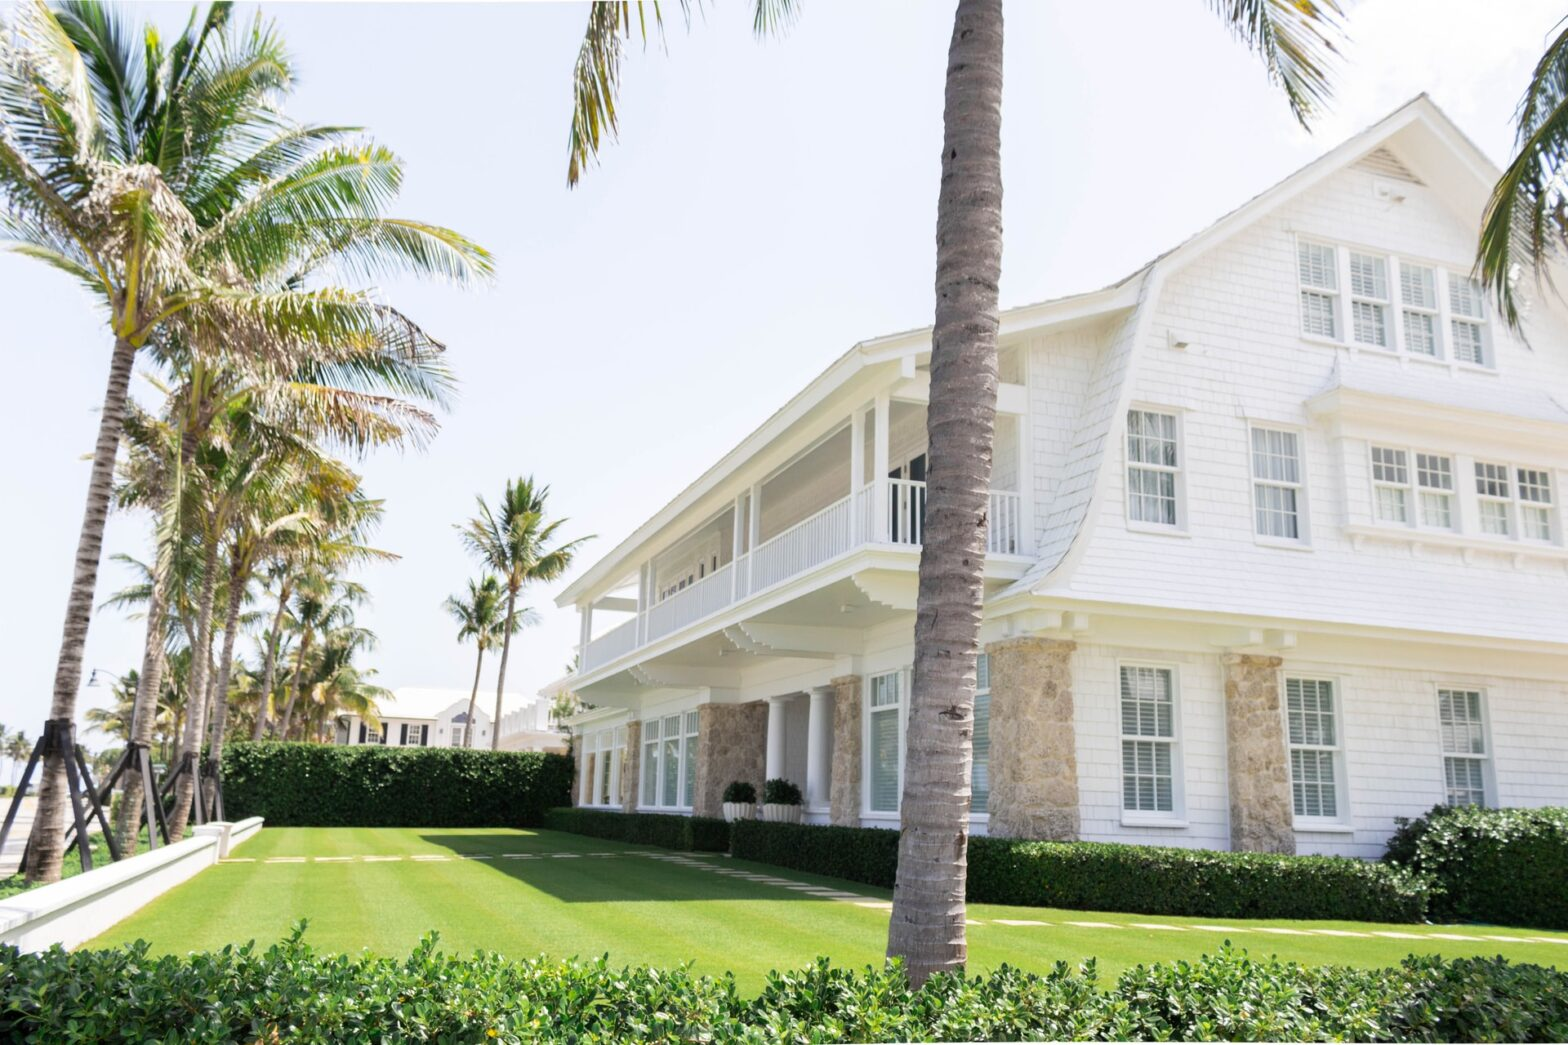 what house with palm trees in boca raton